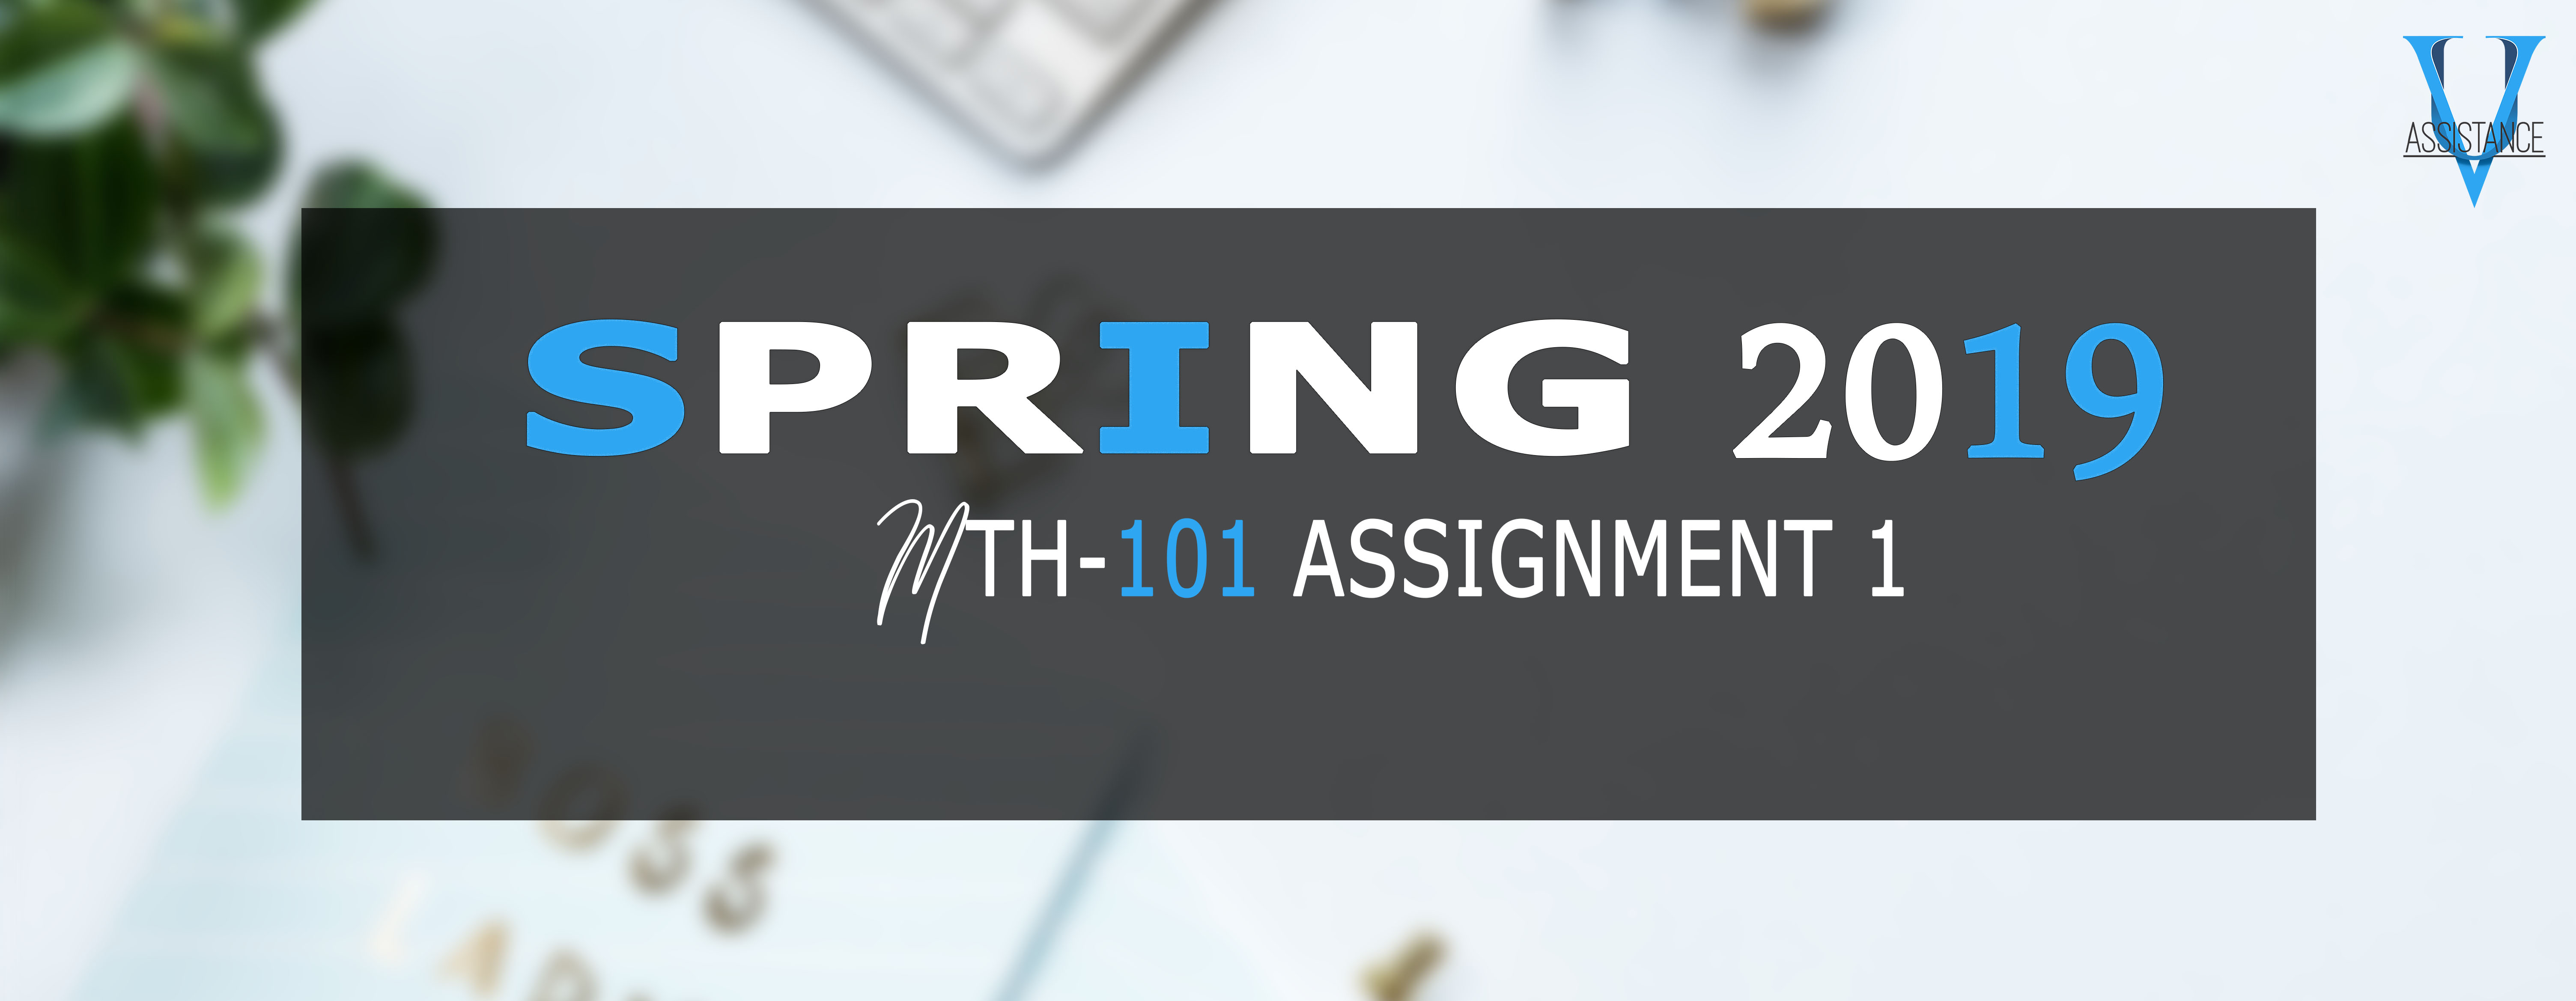 Mth101 Assignment 1 IDea Solution Spring 2019